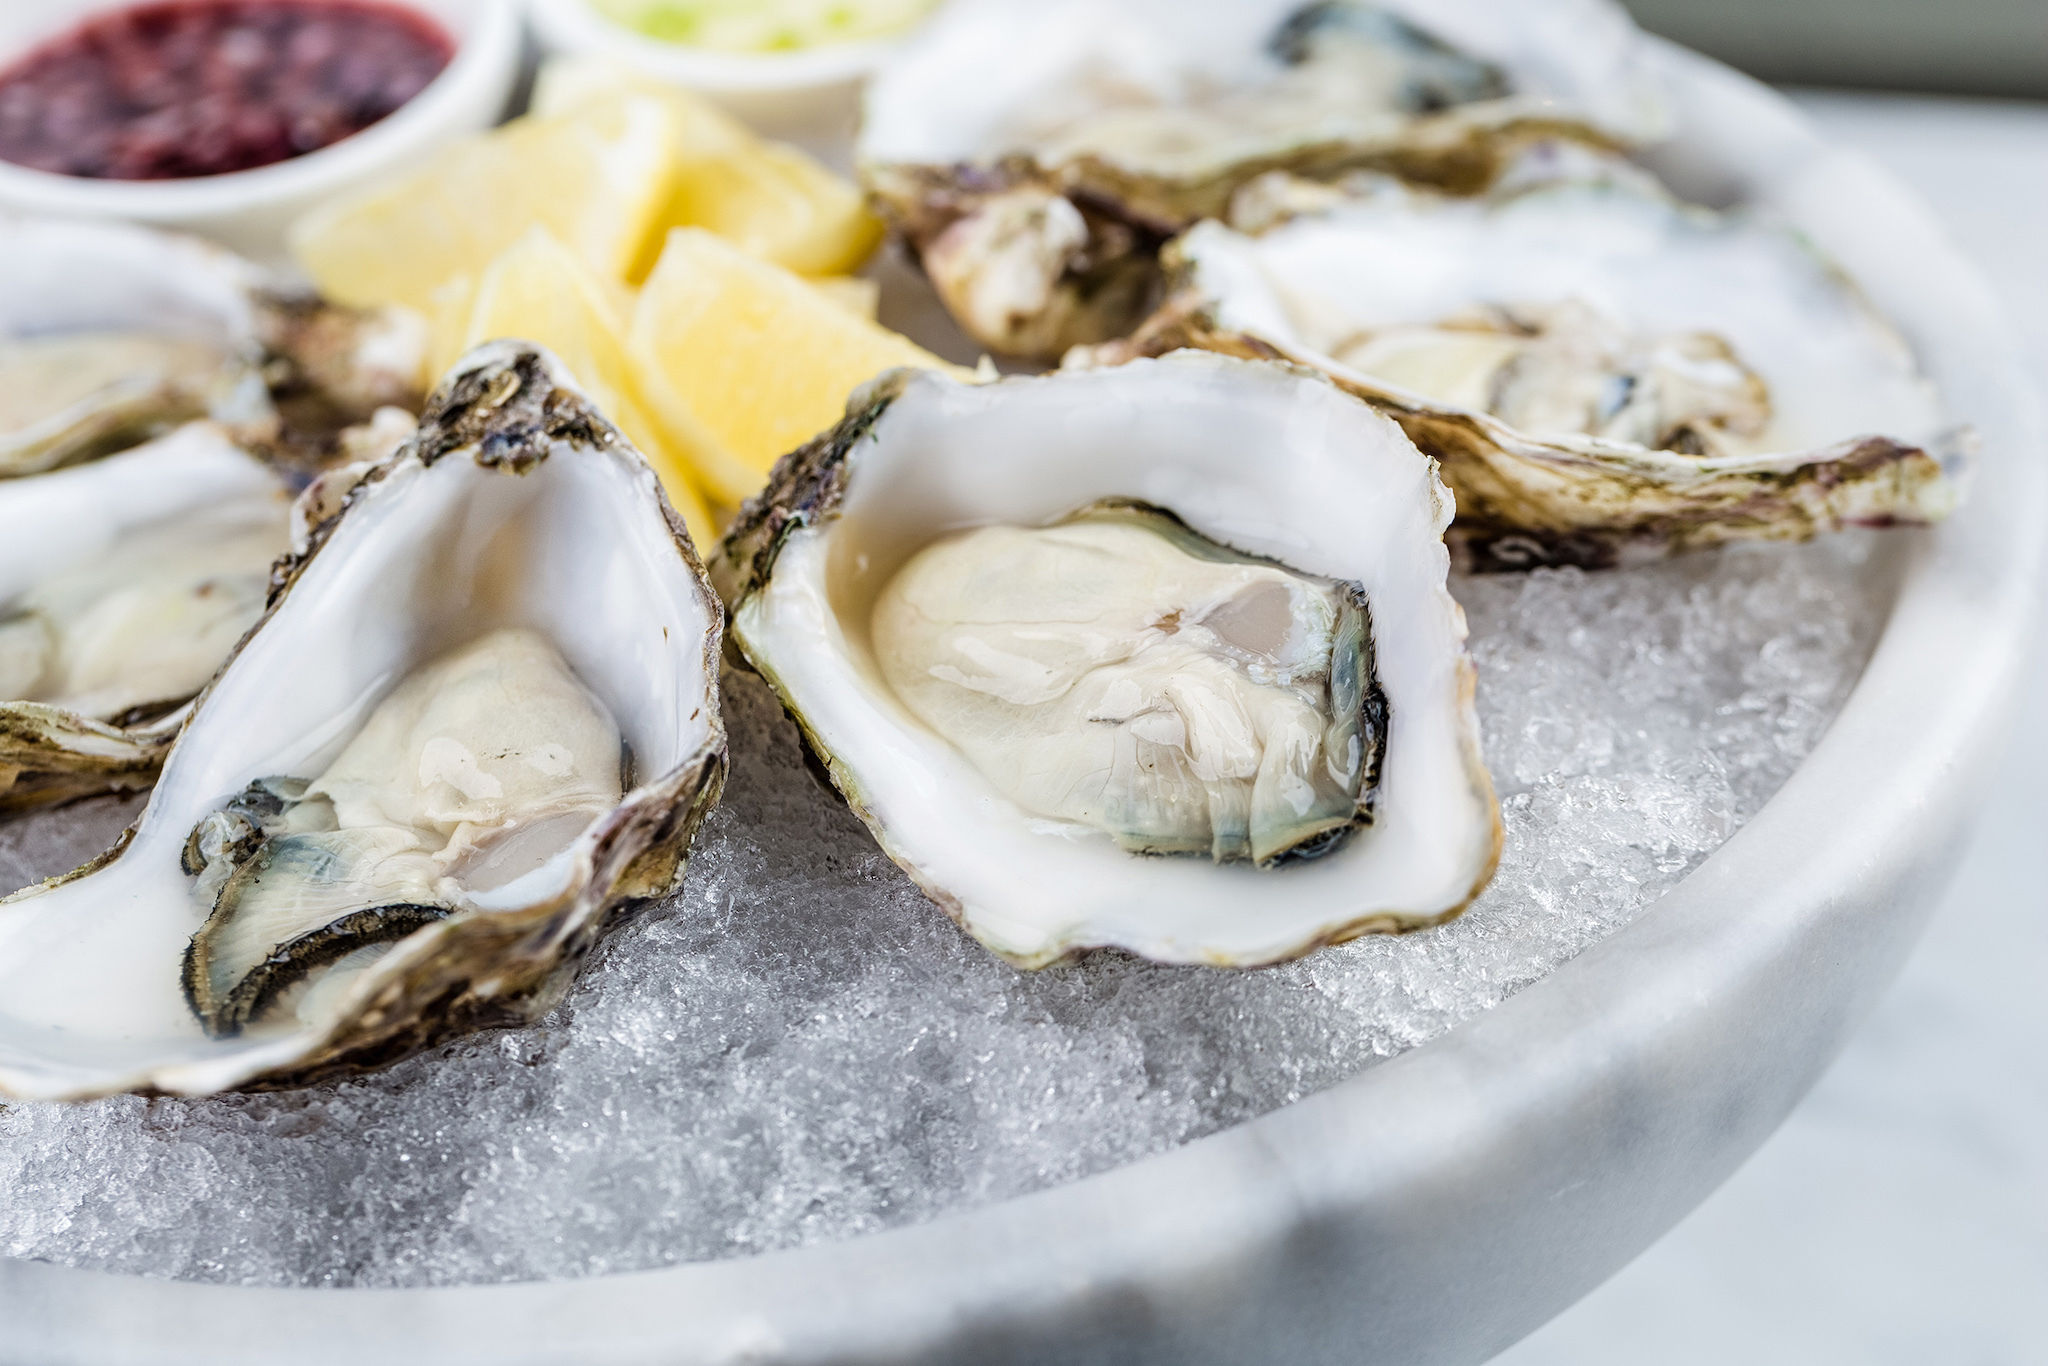 Oysters Shutterstock image for Food and Sake advertorial